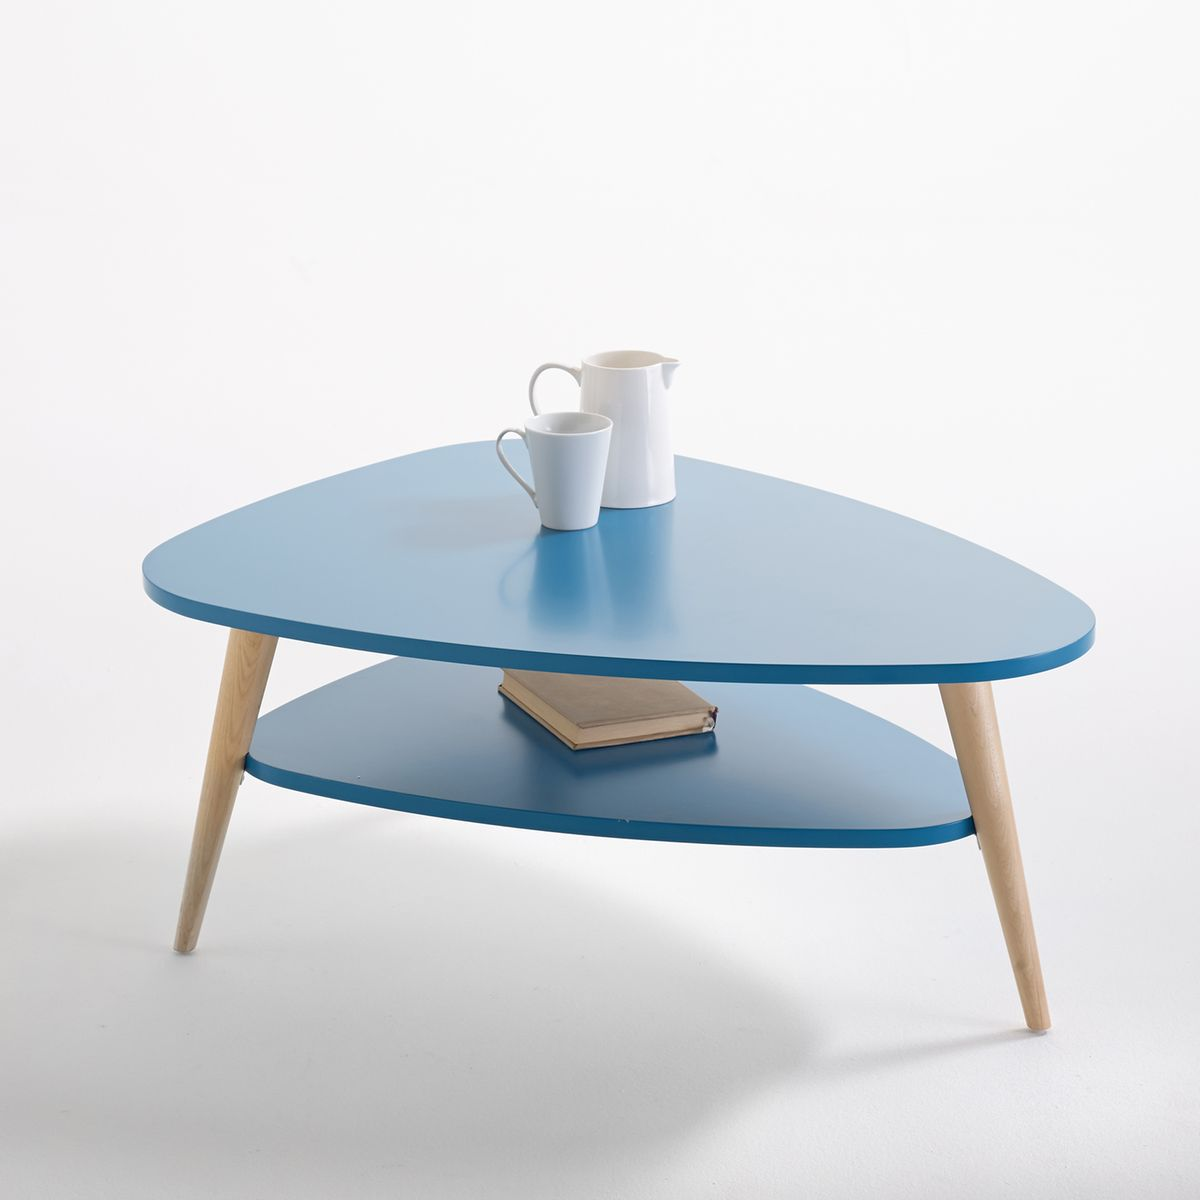 Le dressing de sarablabla d coration et mobilier scandinave - Table basse scandinave la redoute ...